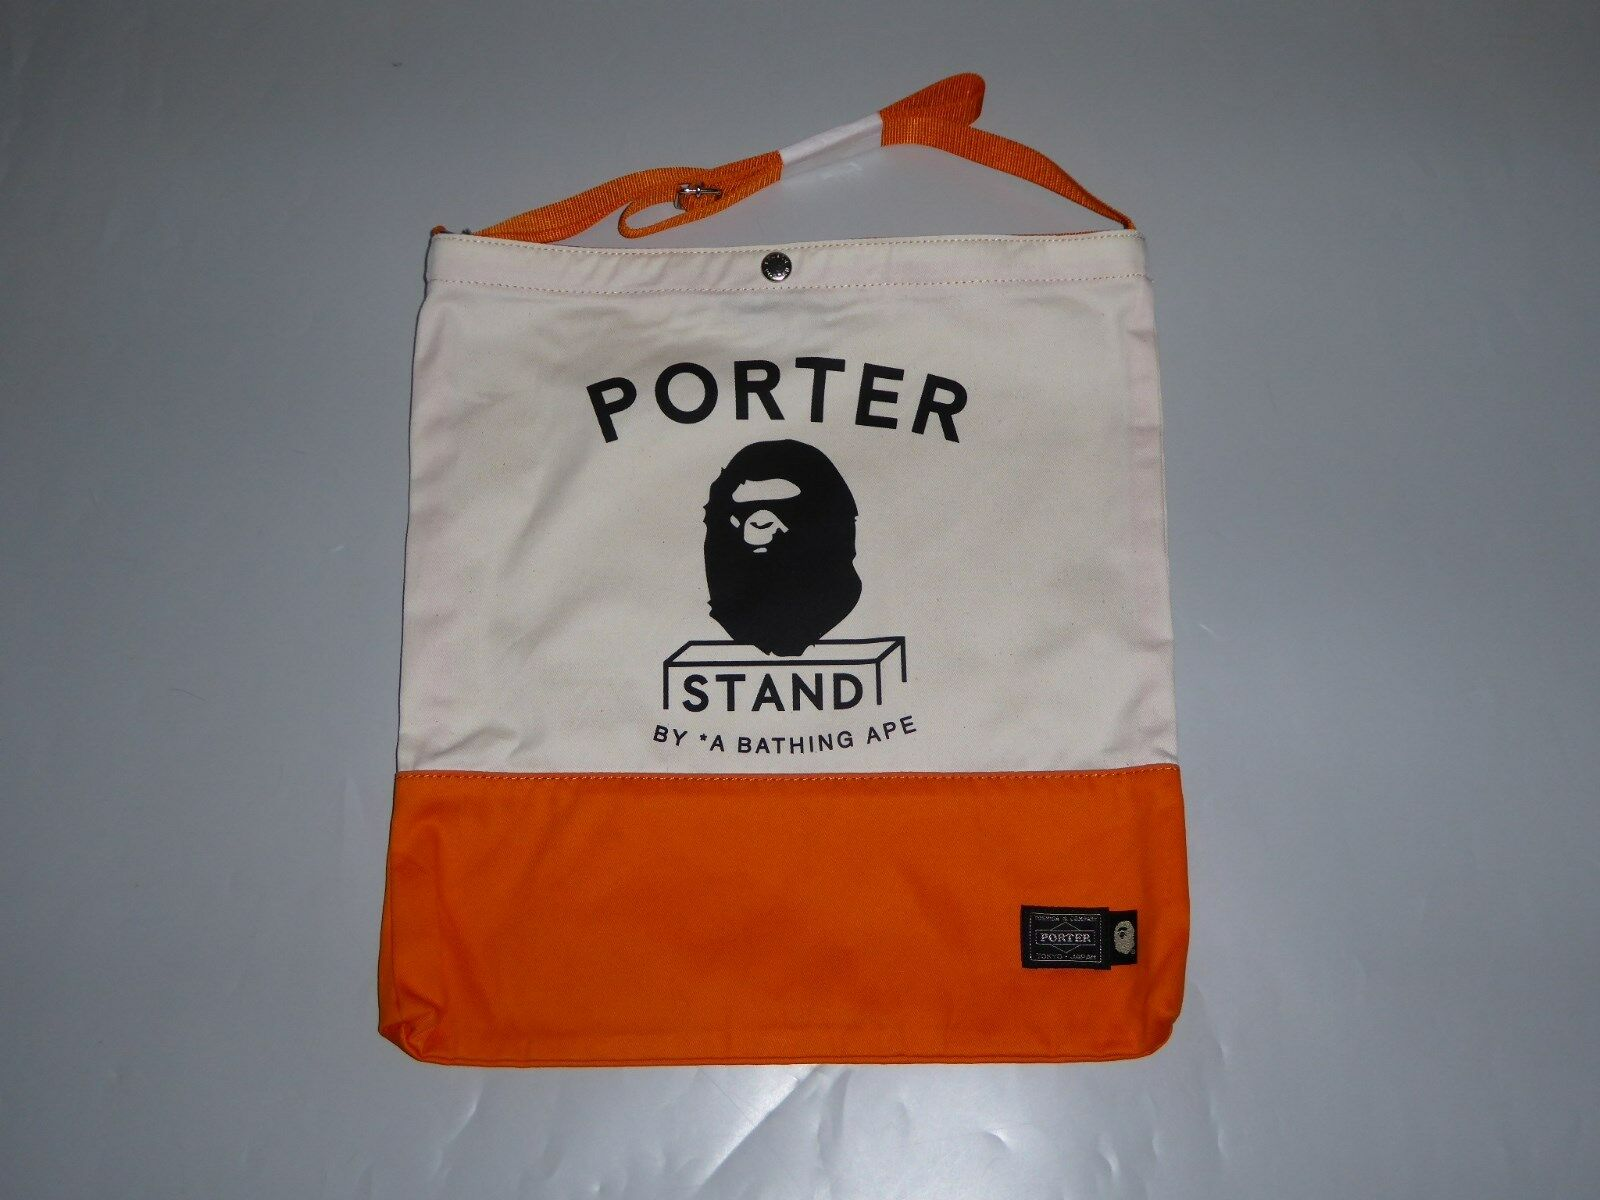 17024 bape porter stand tee XL & shoulder tote bag XL tee 5194de